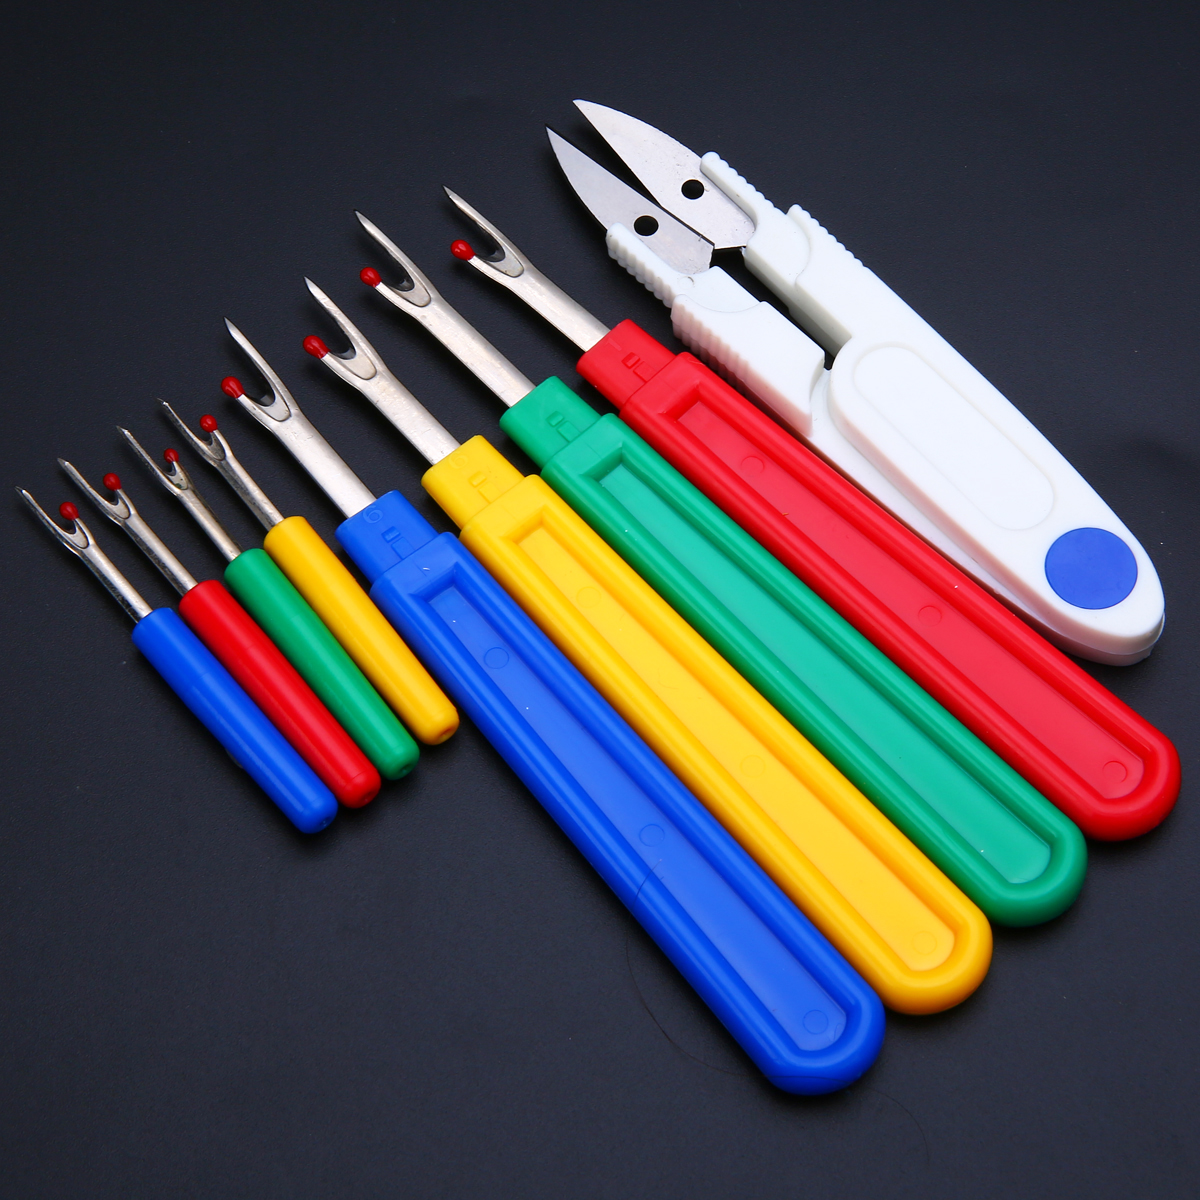 9pcs set Small Large Seam Ripper Stitch Unpicker Sewing Tool with Thread Cutter Plastic Handle DIY Craft Tool Accessories in Sewing Tools Accessory from Home Garden